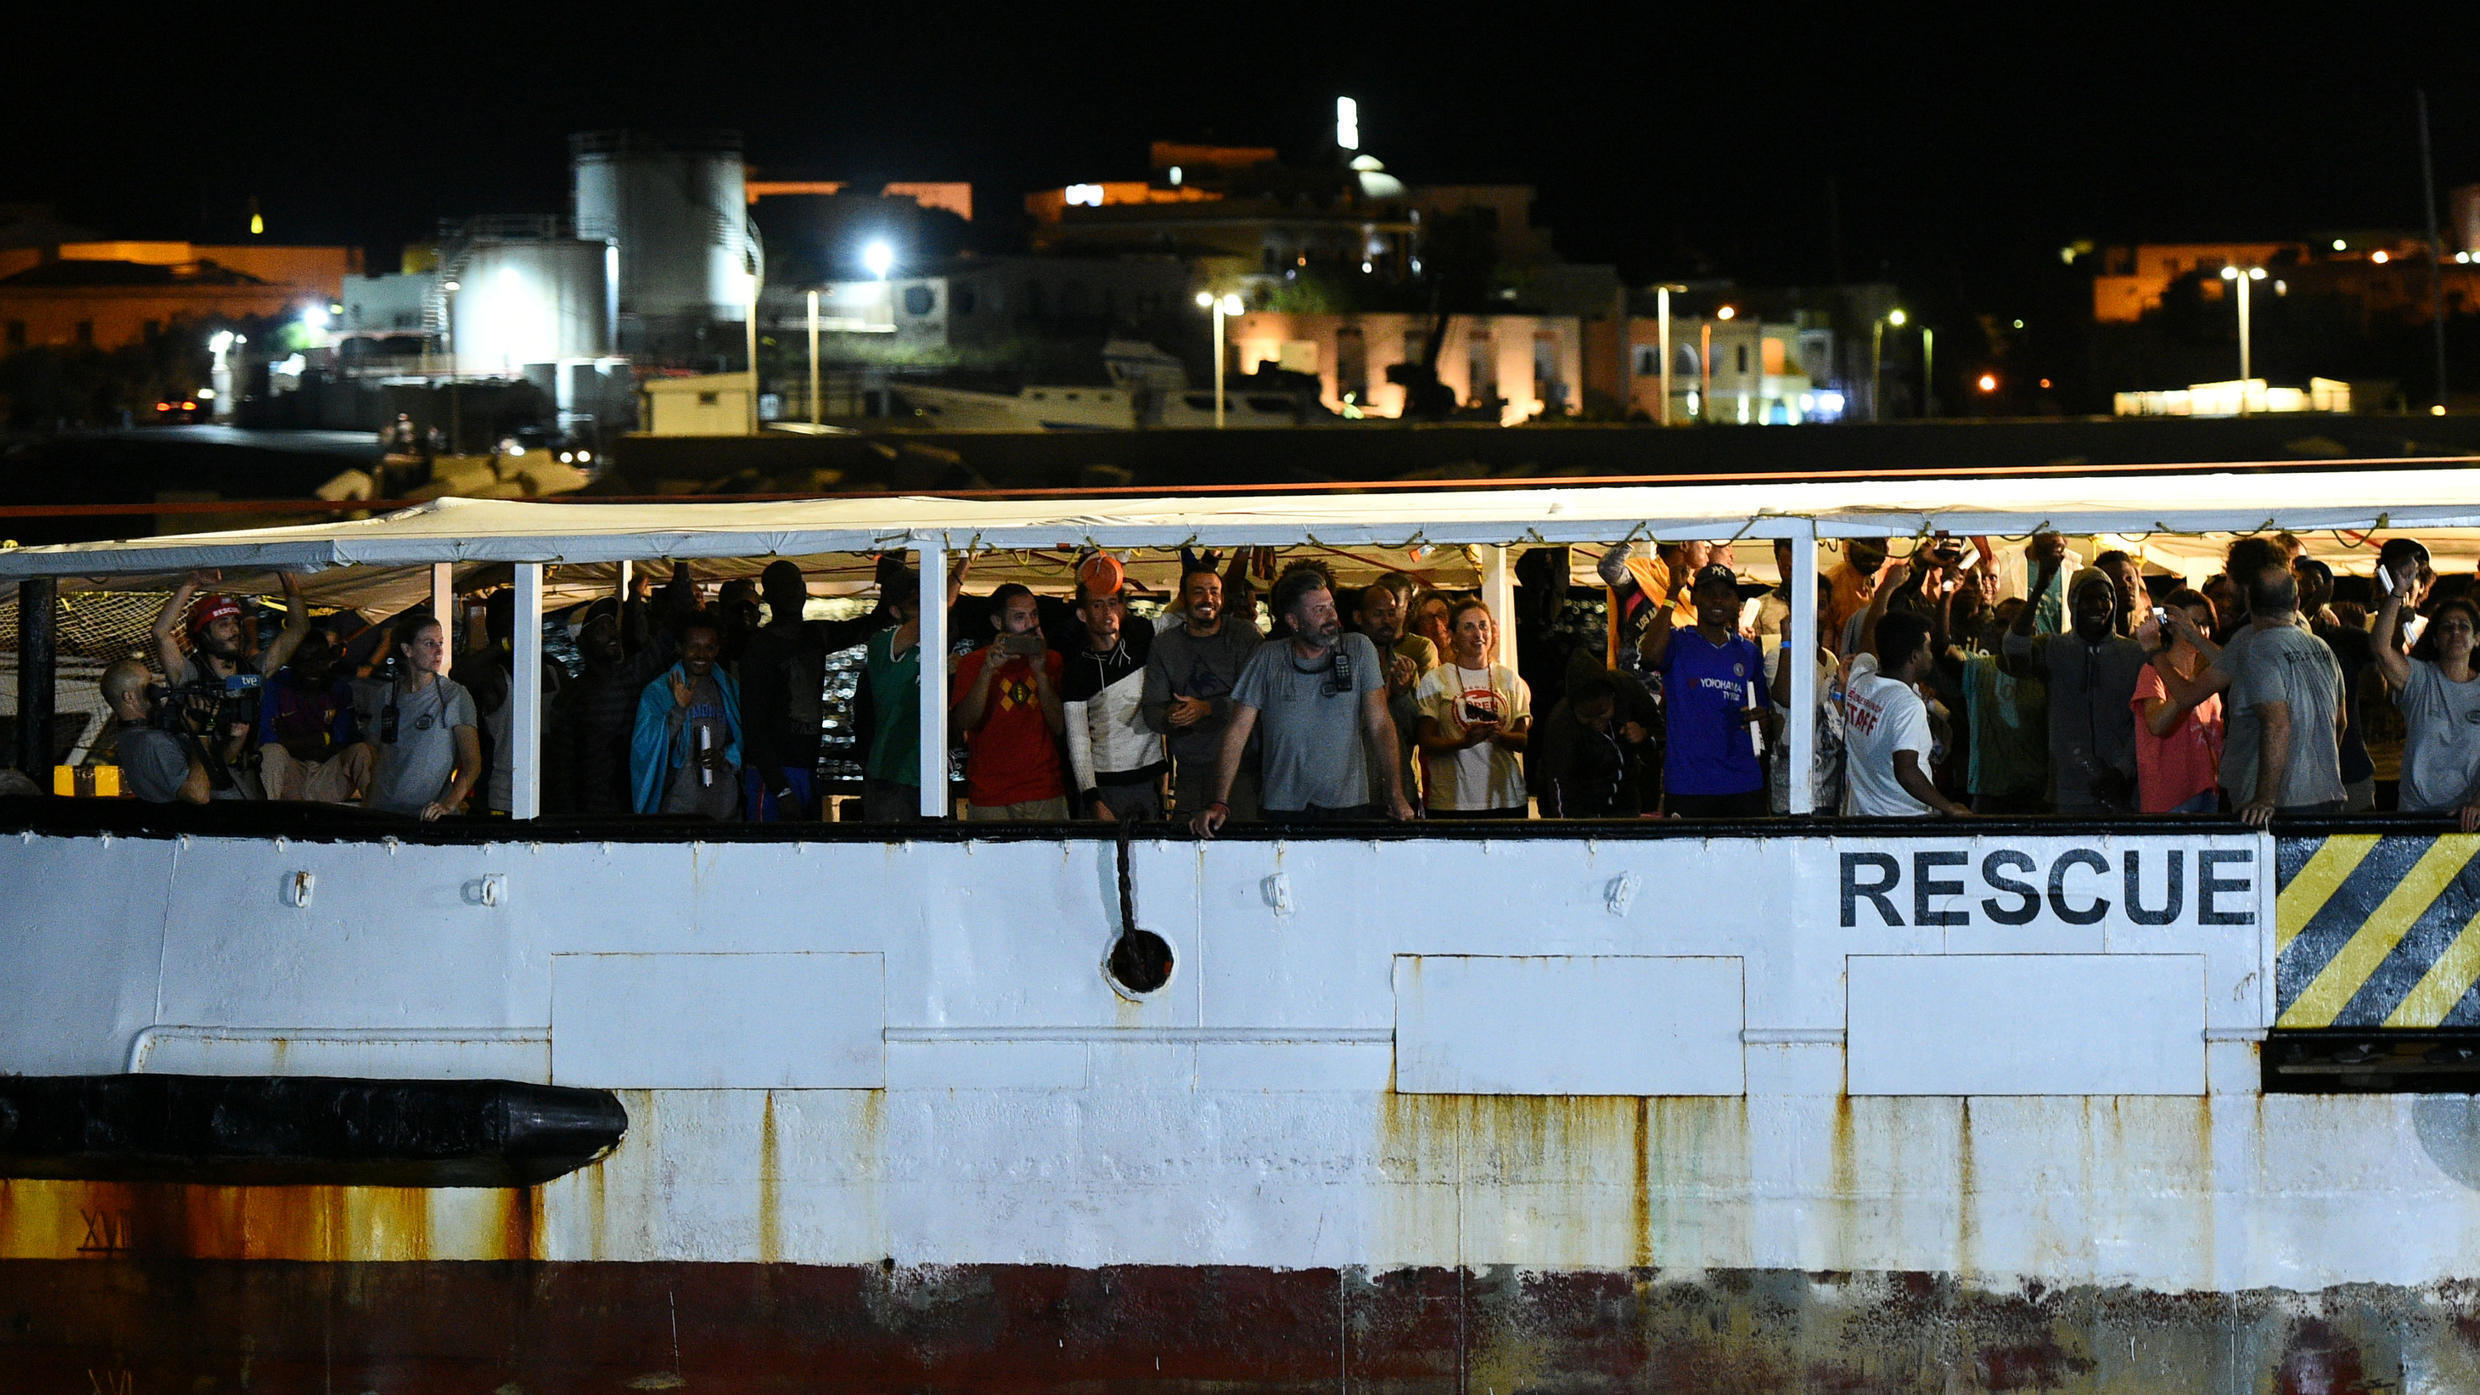 The Spanish rescue ship Open Arms, with dozens of migrants on board, arrives in Lampedusa, Italy, on August 20, 2019.